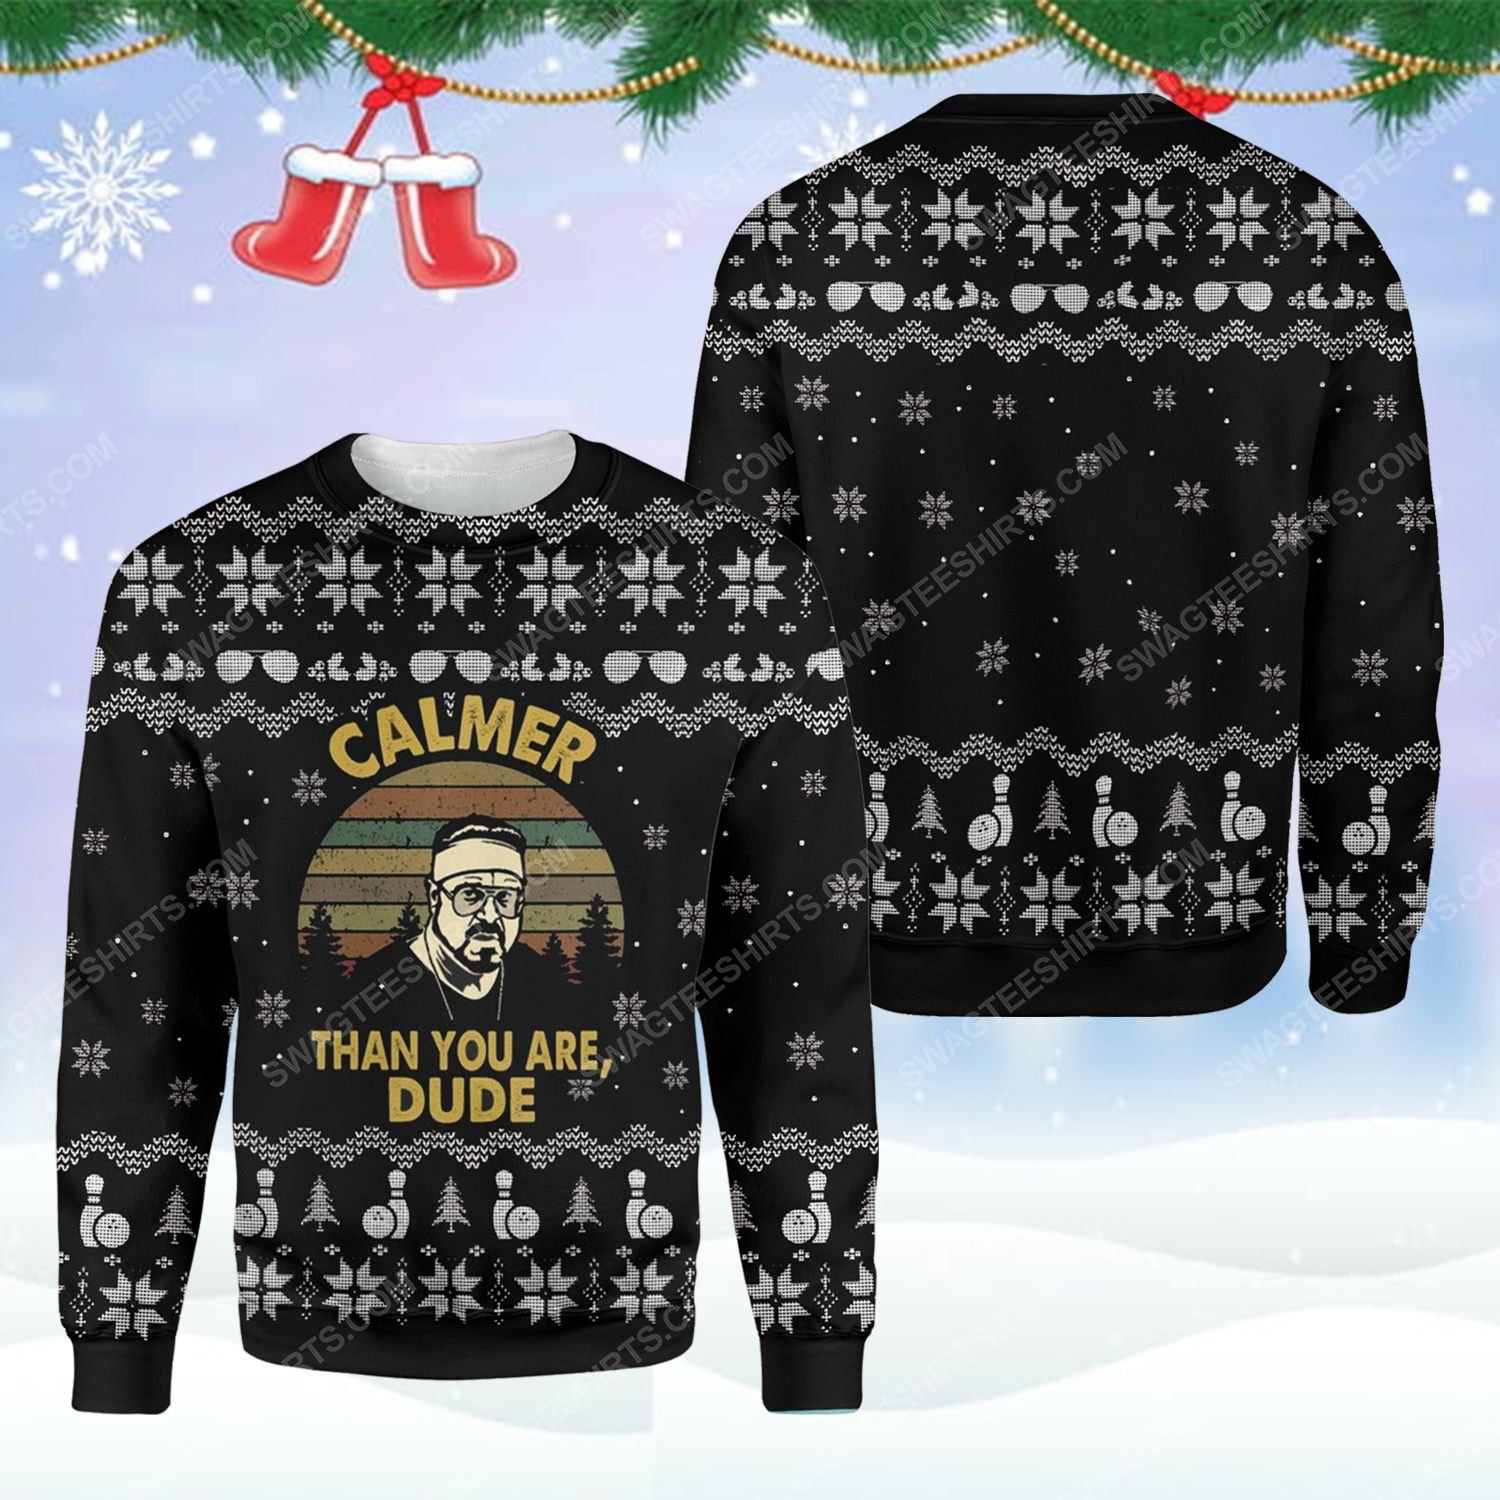 The big lebowski calmer than you are dude ugly christmas sweater - Copy (2)